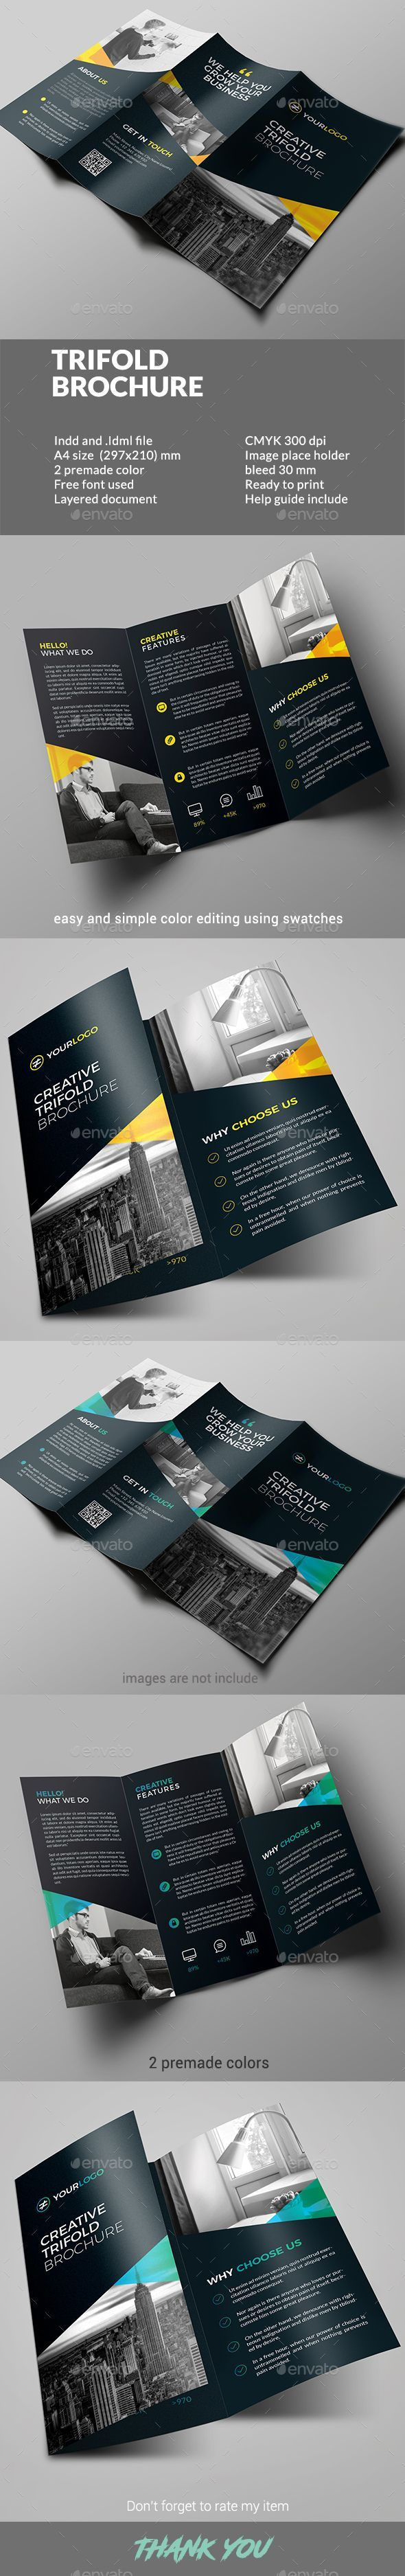 Trifold Brochure - Corporate #Brochures Download here